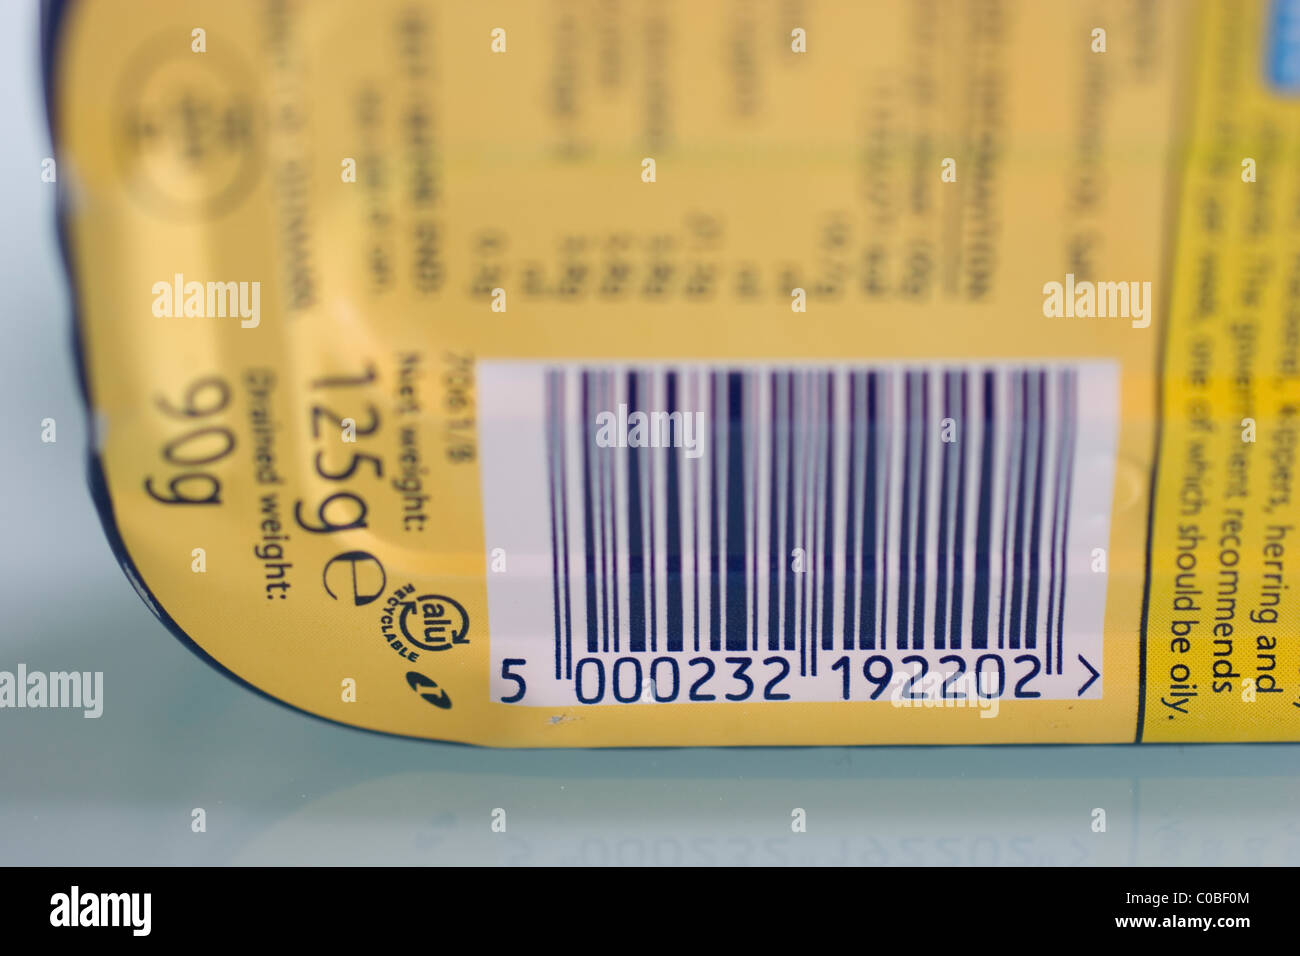 Barcode on food item stock photo 34673988 alamy for Food barcode